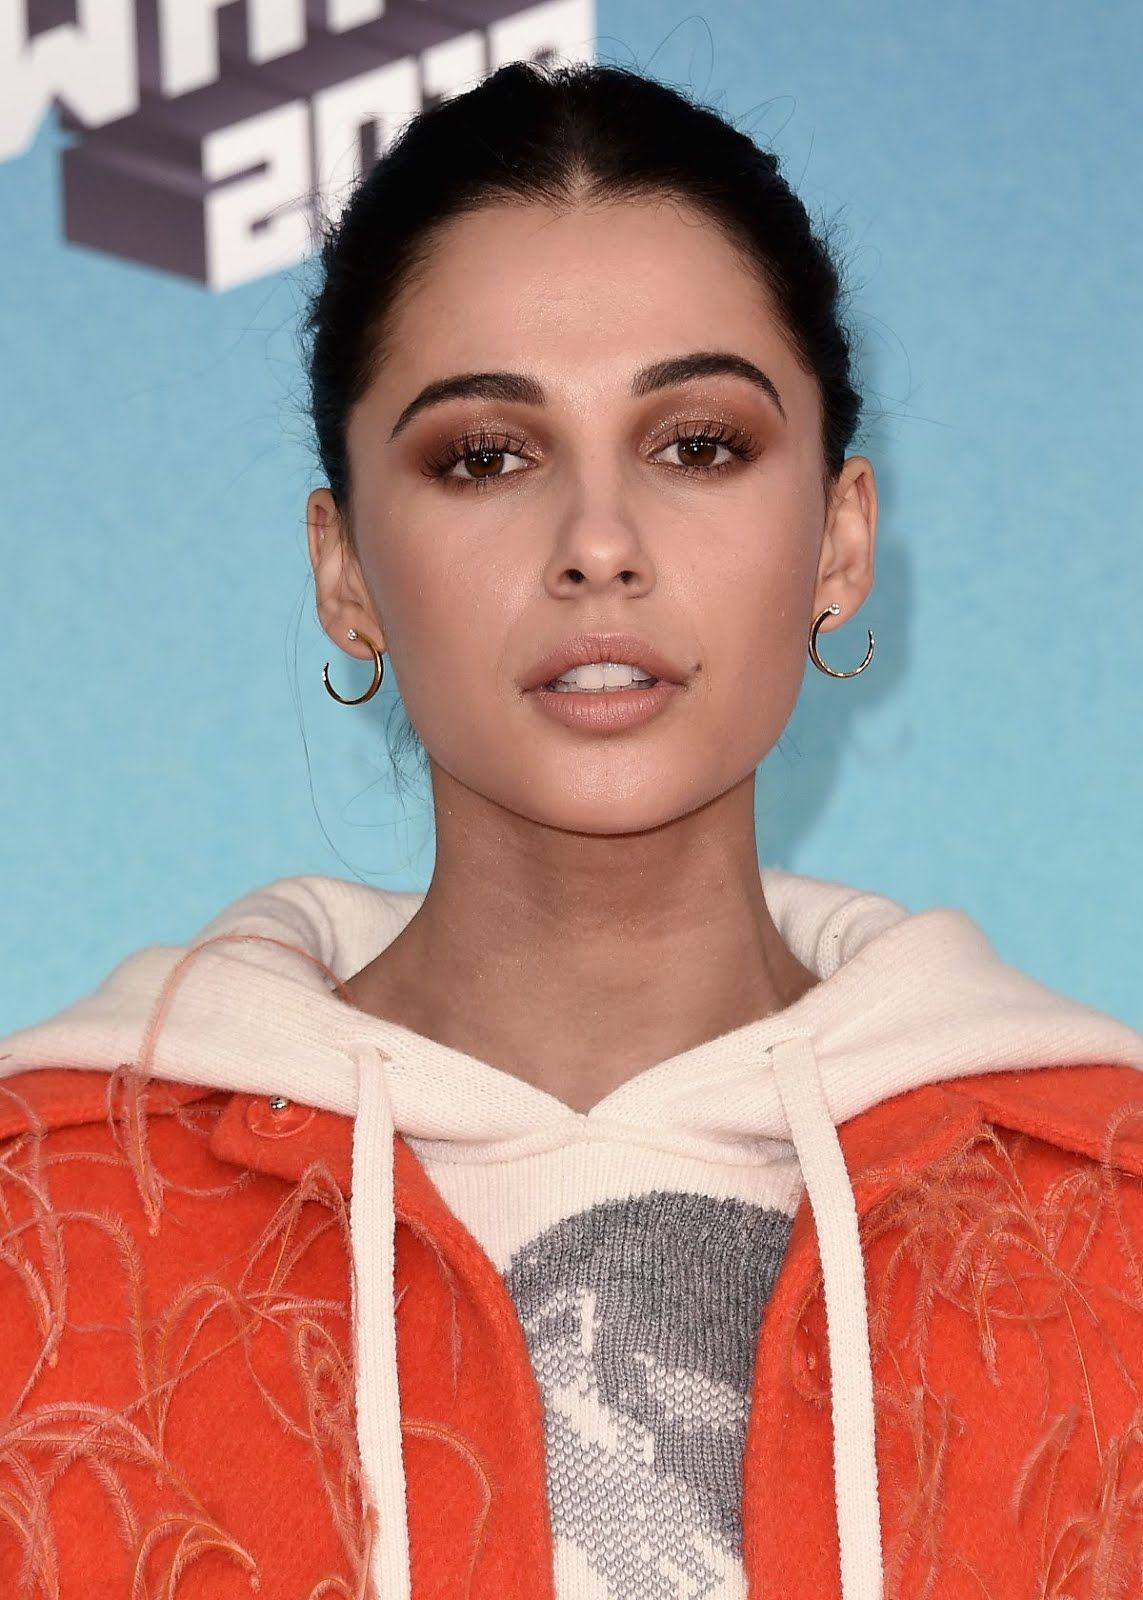 Wallpapers of Naomi Scott At Nickelodeon Kids Choice Awards 2019 1143x1600